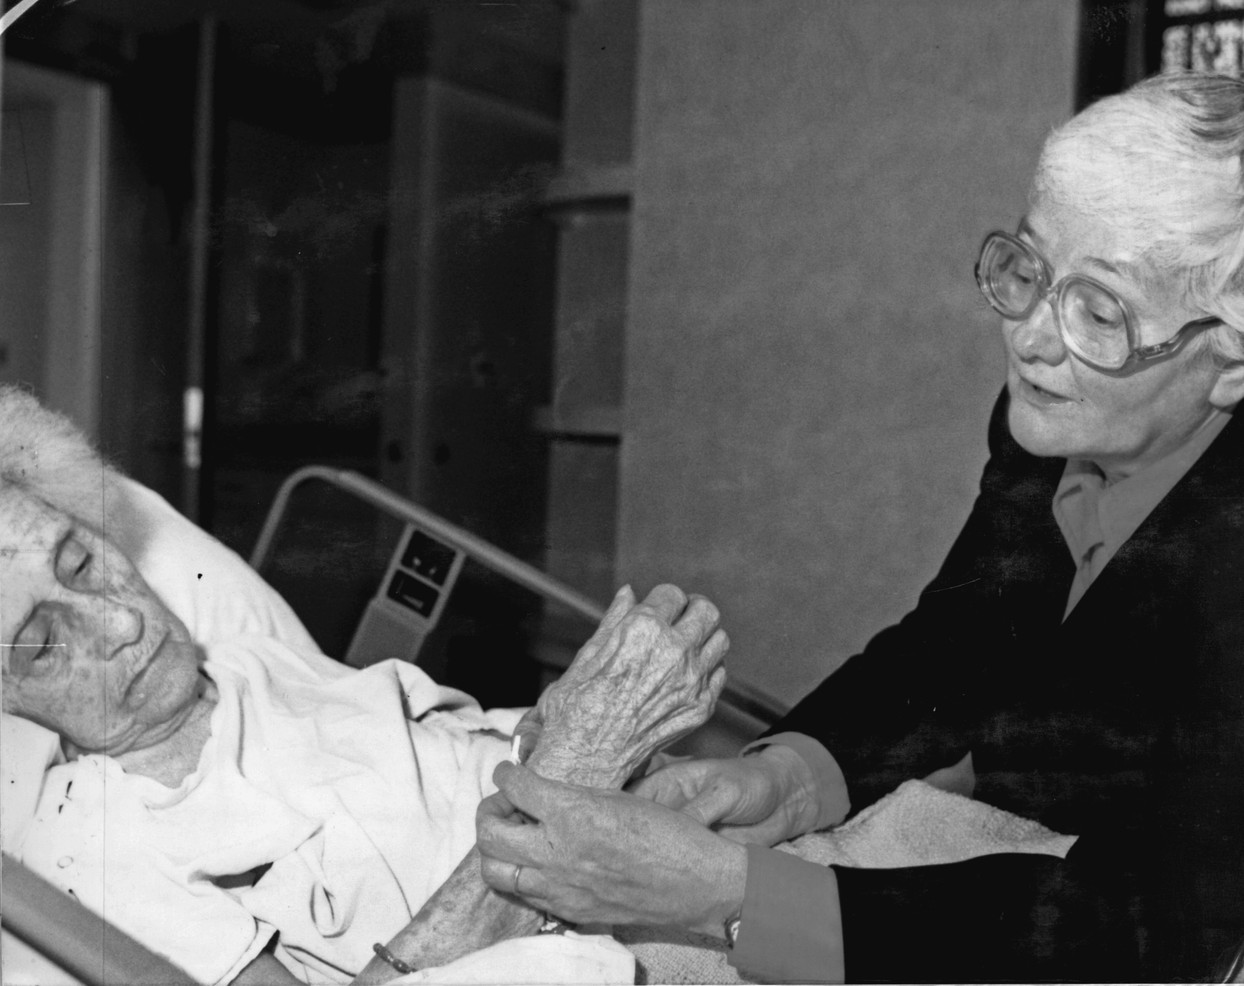 """Sr. Olivia Prendergast, known as """"Mother Teresa of the Panhandle,"""" began a hospice program in 1980 at St. Anthony's Hospital in Amarillo, Texas. Sr. Mary Bryan Sherry also began a hospice program, at Santa Rosa Hospital in San Antonio."""